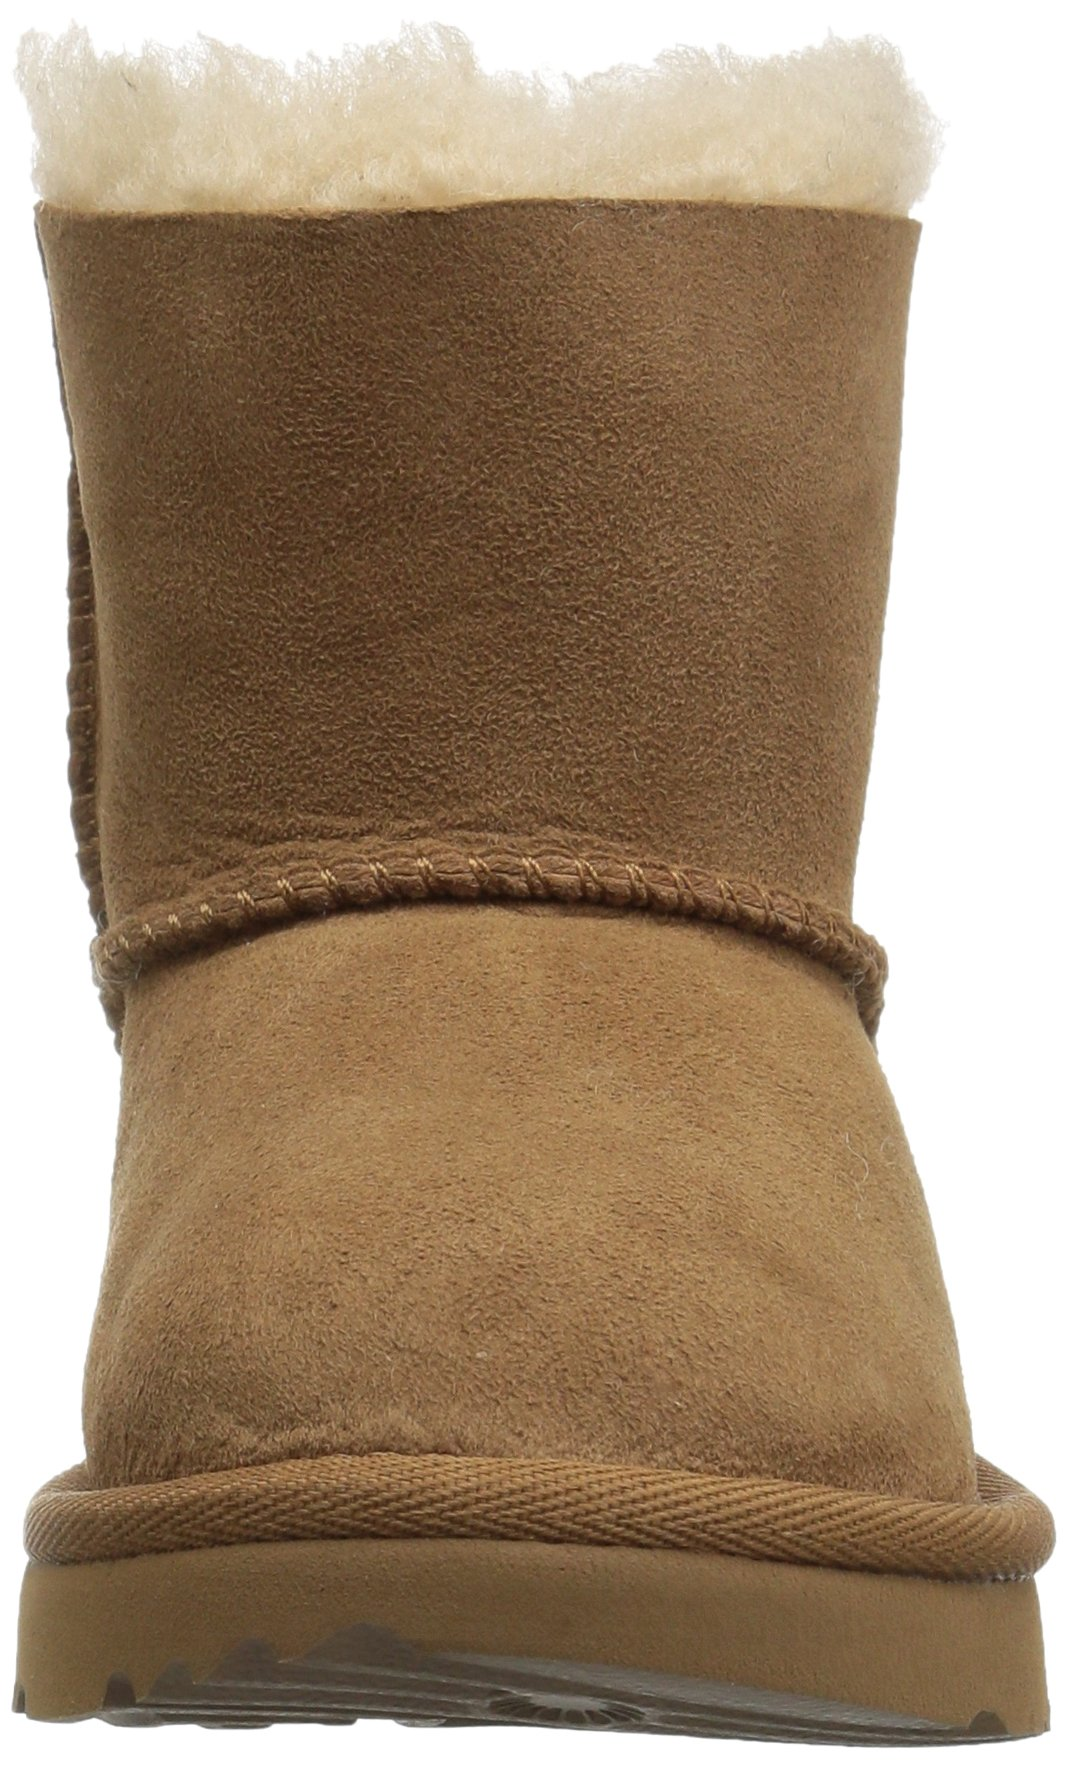 UGG Girls T Mini Bailey Bow II Pull-on Boot, Chestnut, 12 M US Little Kid by UGG (Image #4)